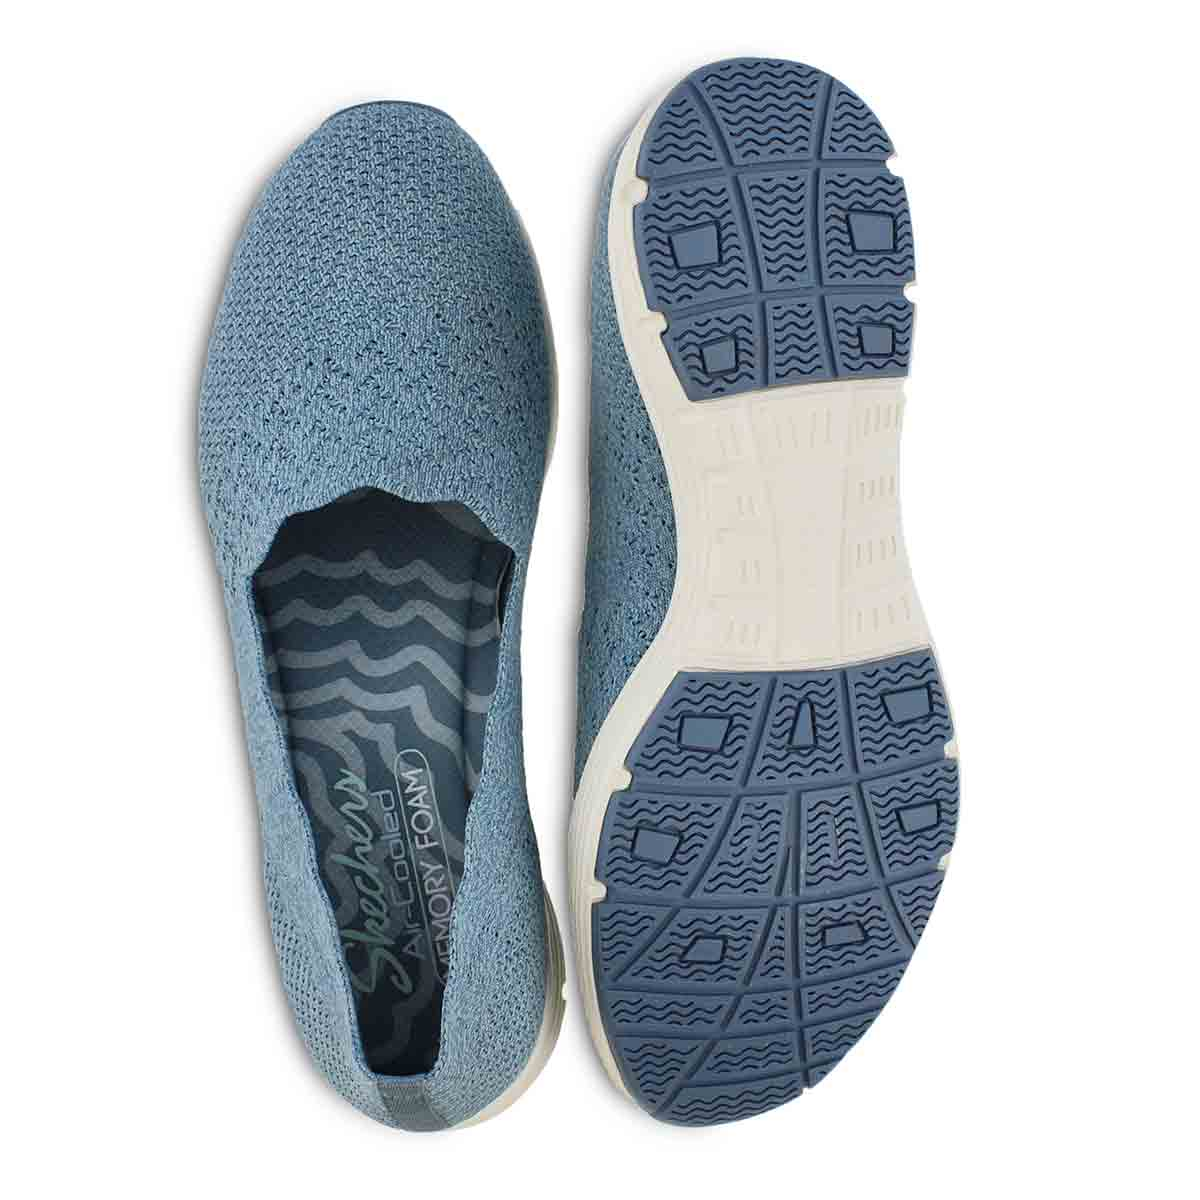 Lds Seager Stat denim slip on shoe